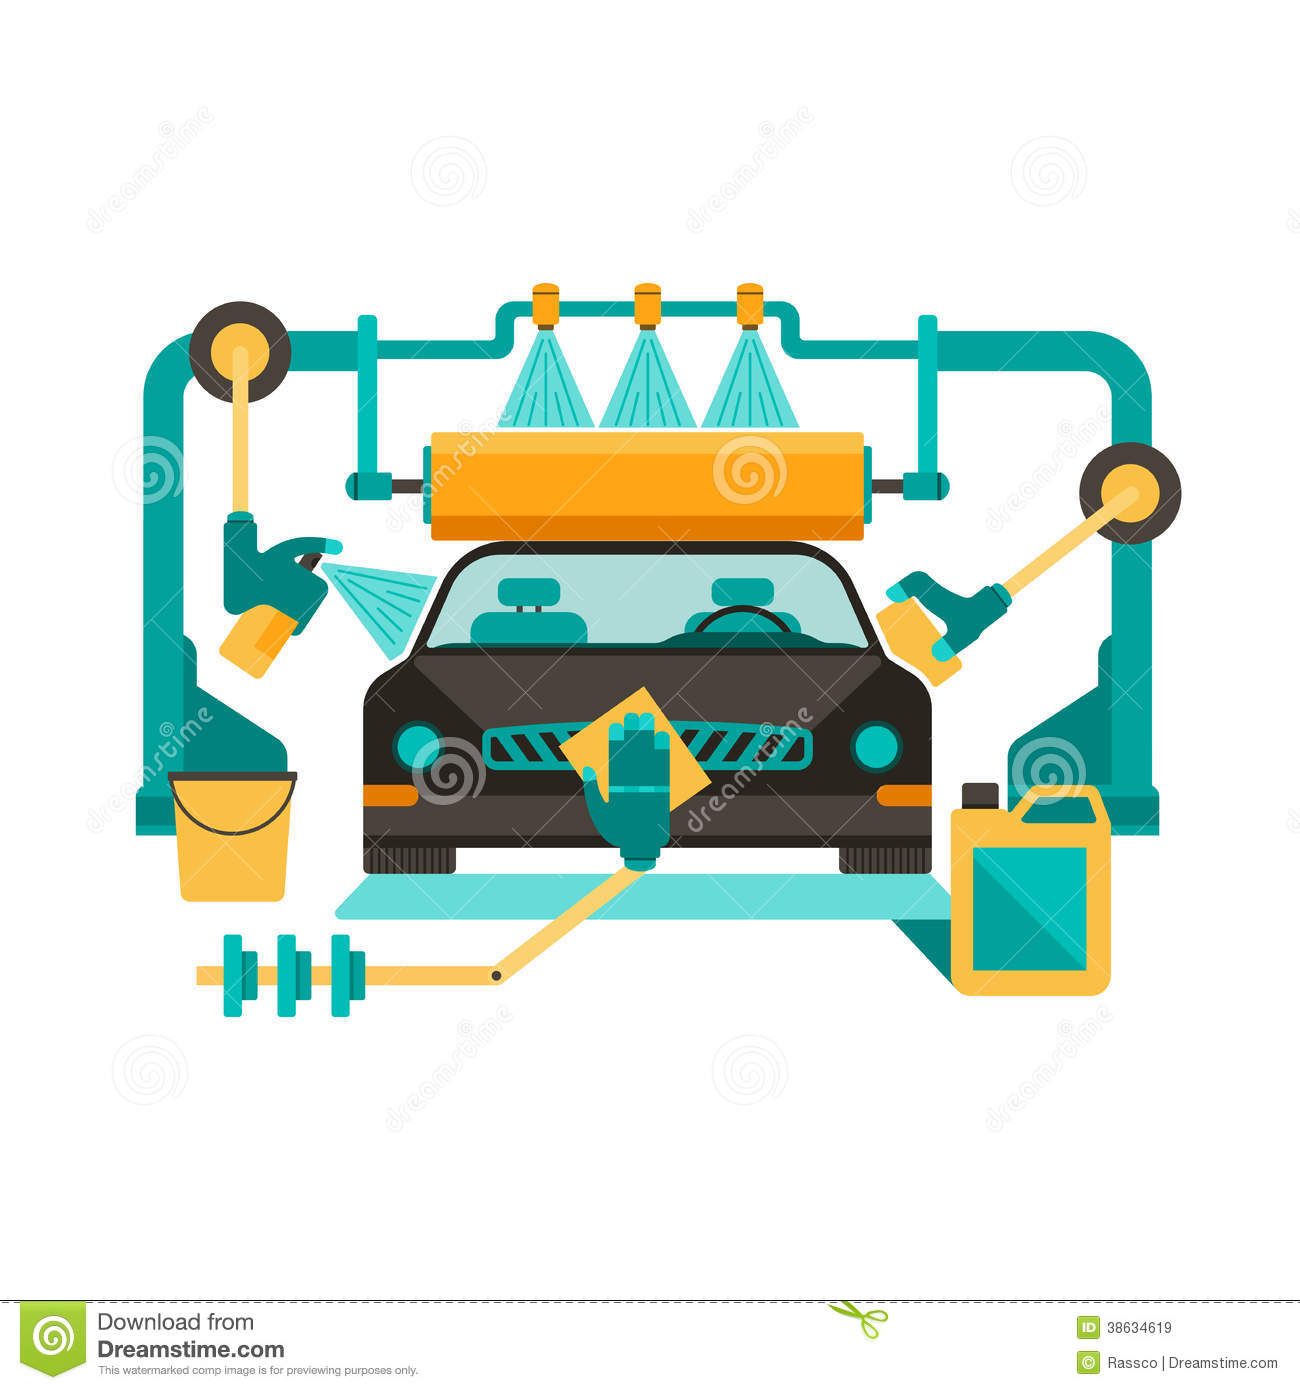 Car in automatic car wash clipart clipart library download Car in automatic car wash clipart - ClipartFest clipart library download